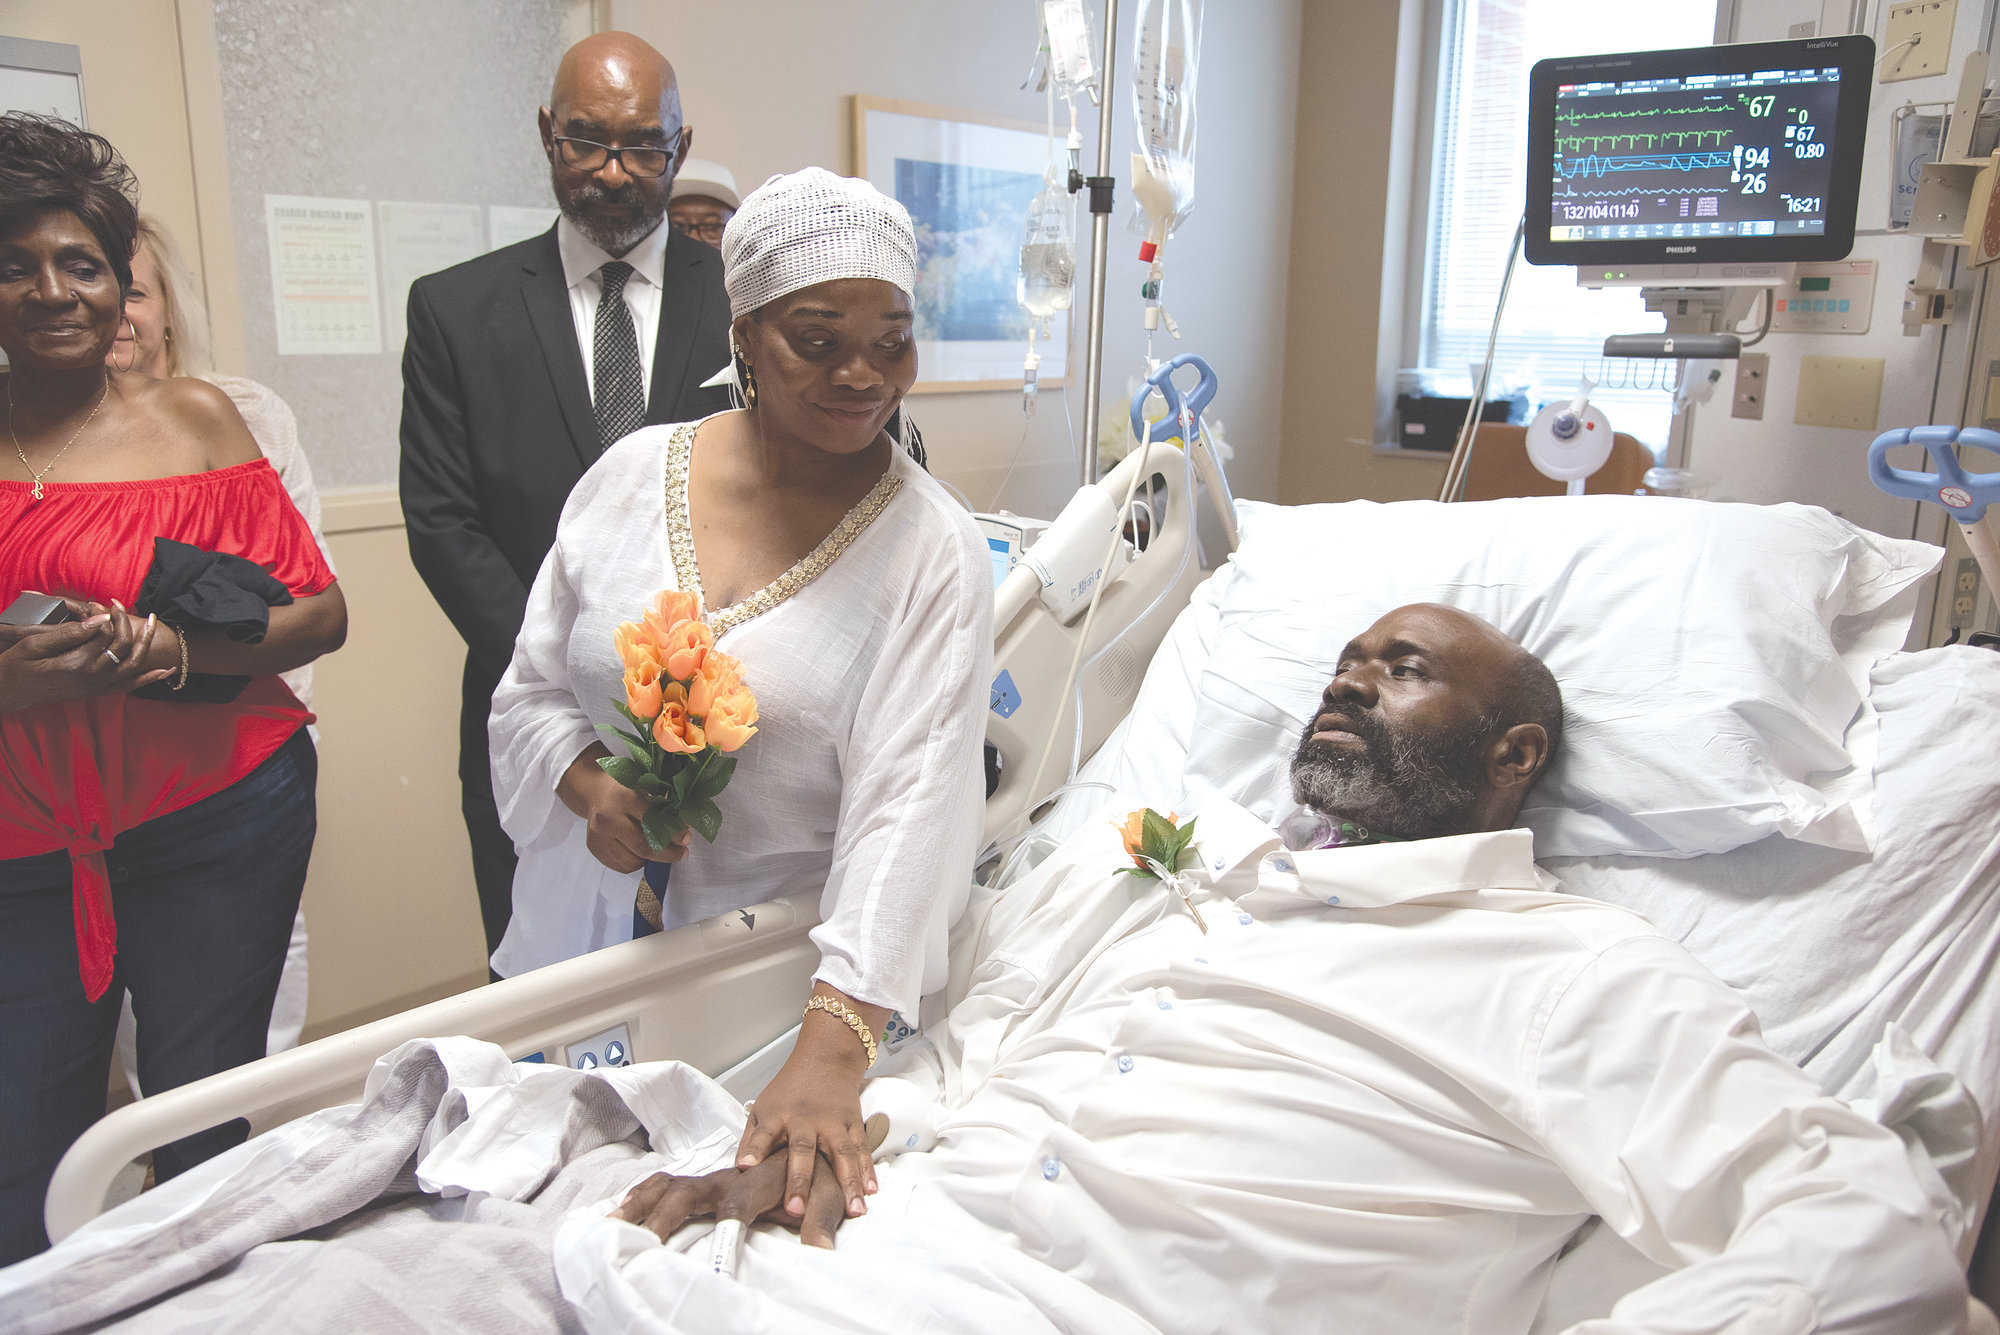 Marshal Maurice John and Erica Brooks were married recently in Prisma Health Tuomey Hospital's ICU.